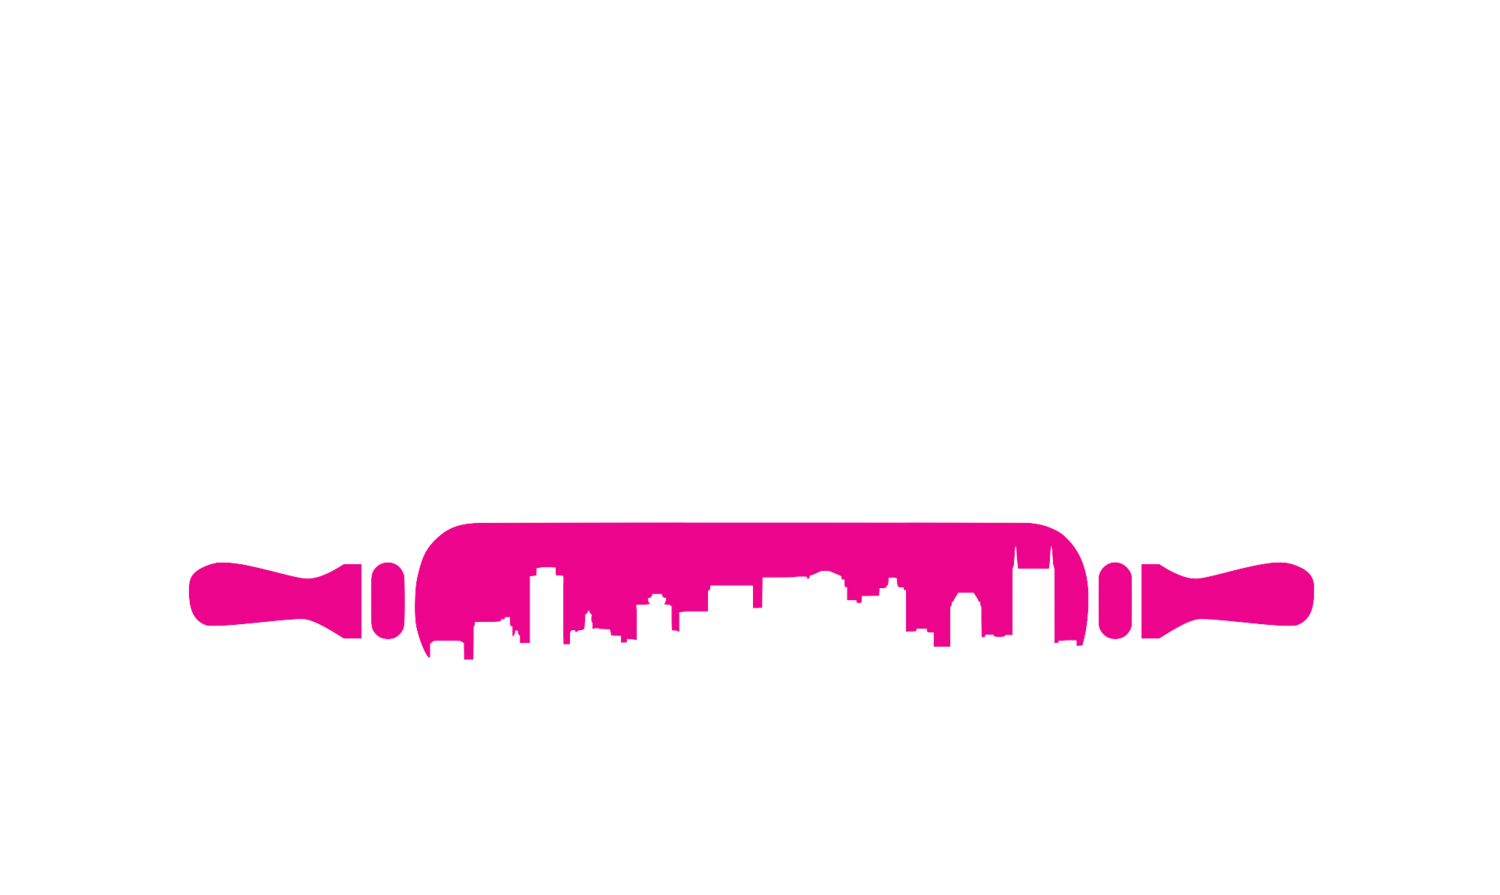 City Girl Treats